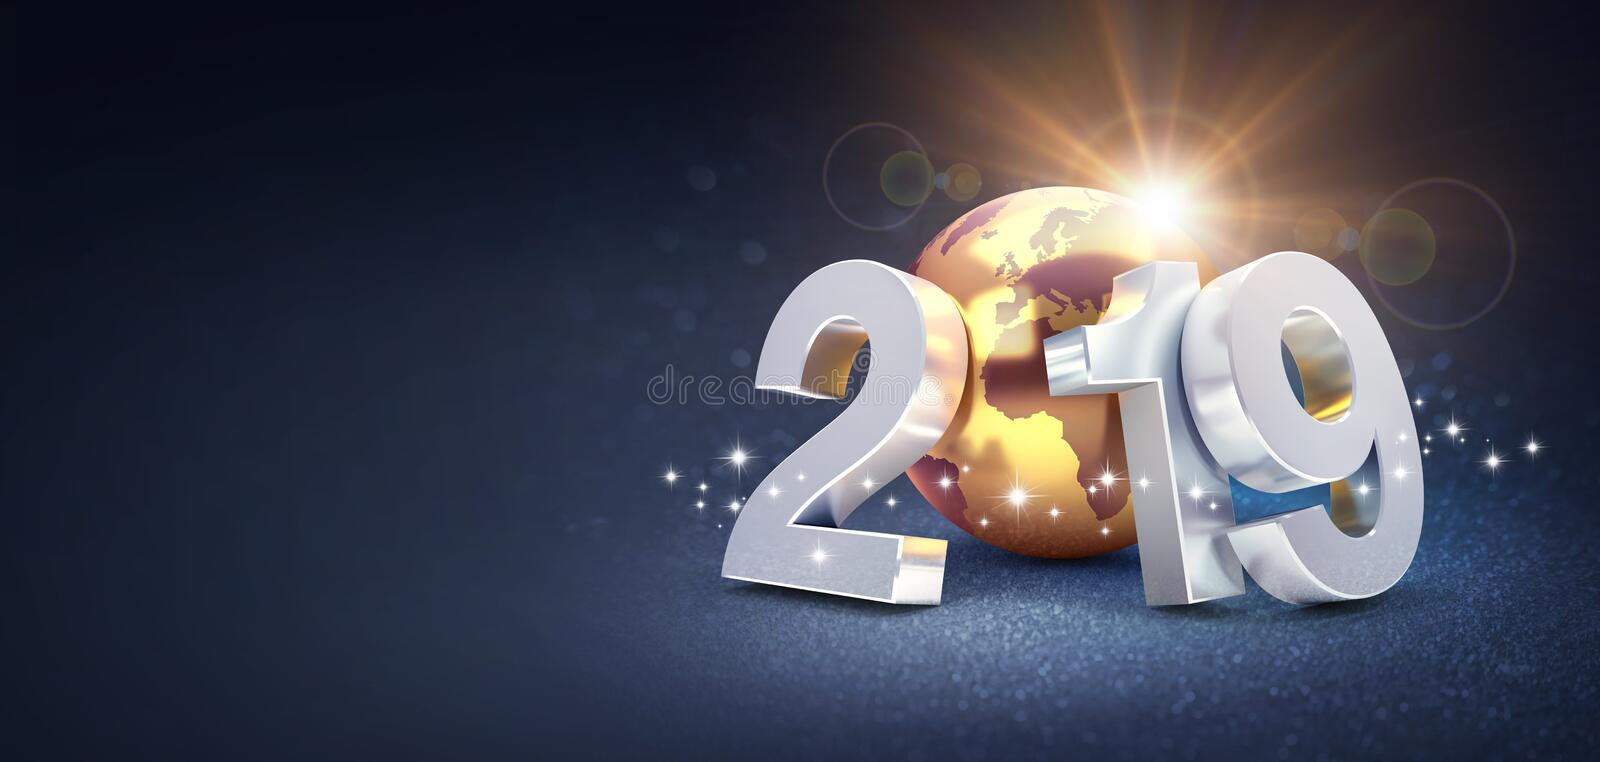 Silver New Year date 2019 composed with a gold planet earth, sun shining behind, on a glittering black background - 3D vector illustration